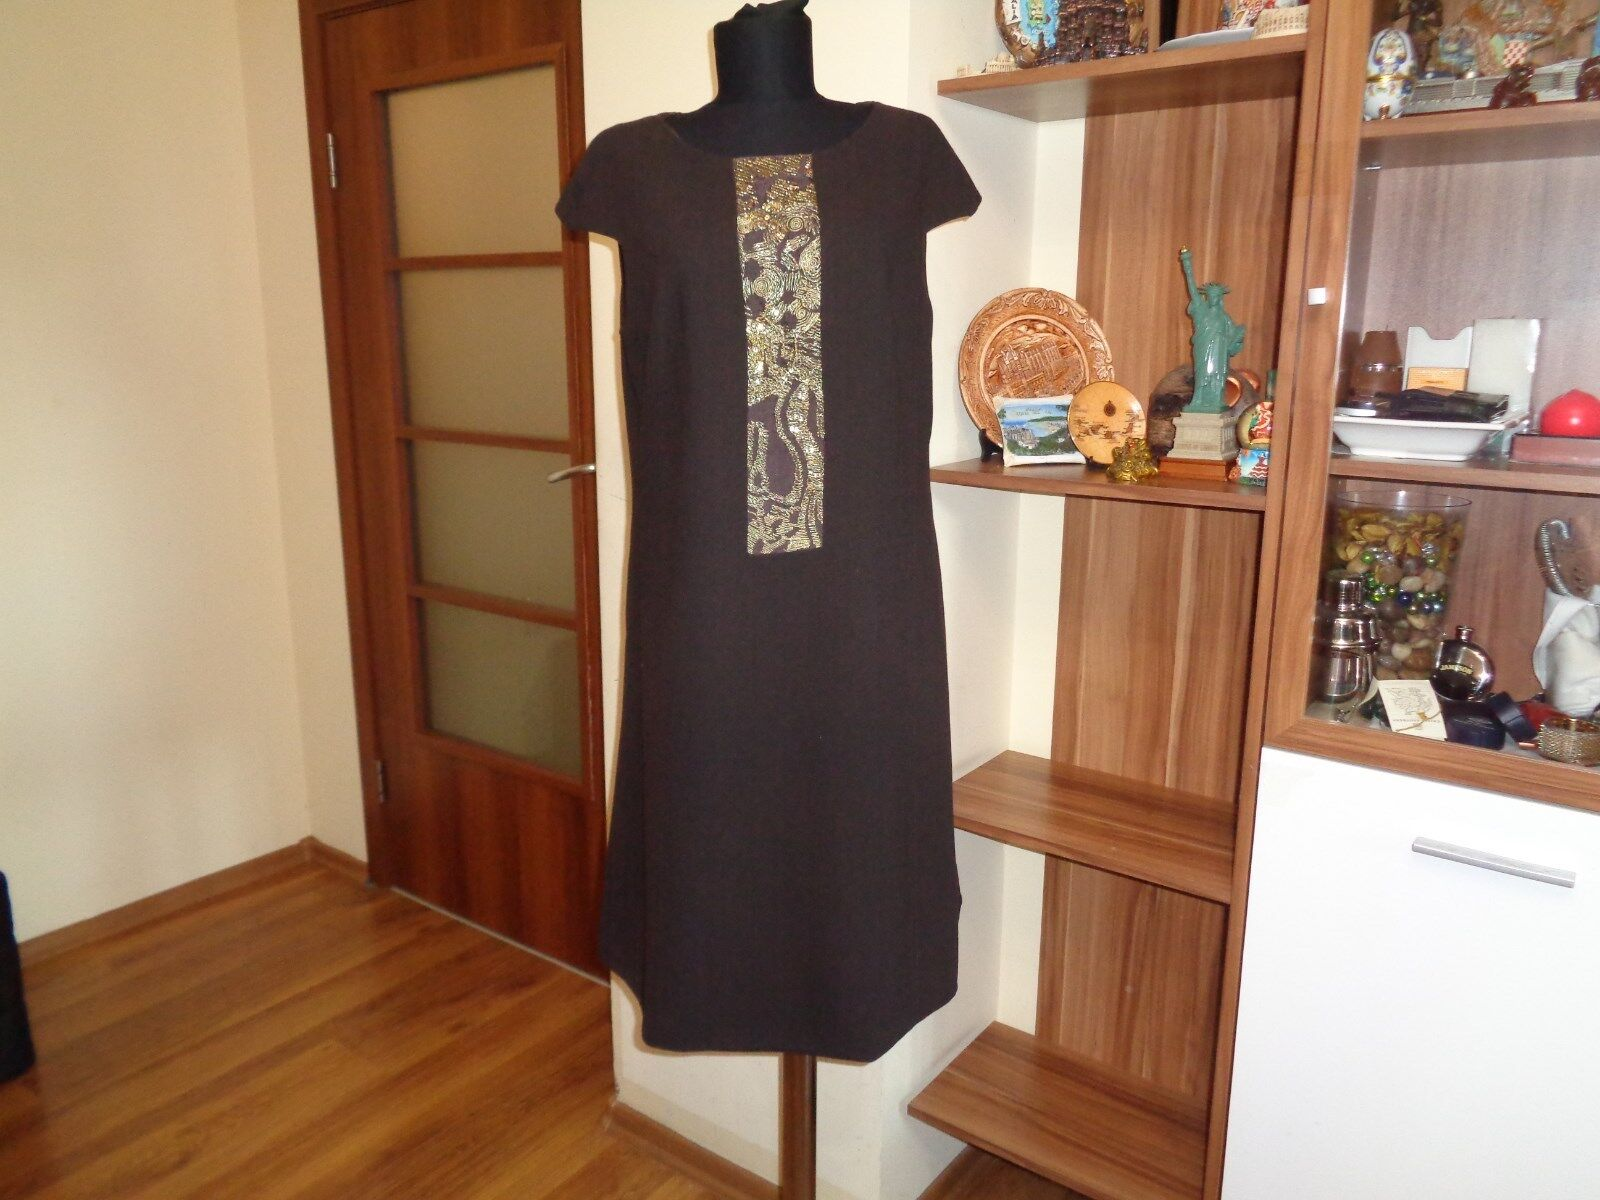 BADGLEY MISCHKA DARK BROWN WOOL CREPE A-LINE DRESS WITH gold METALLIC EMBROIDERY